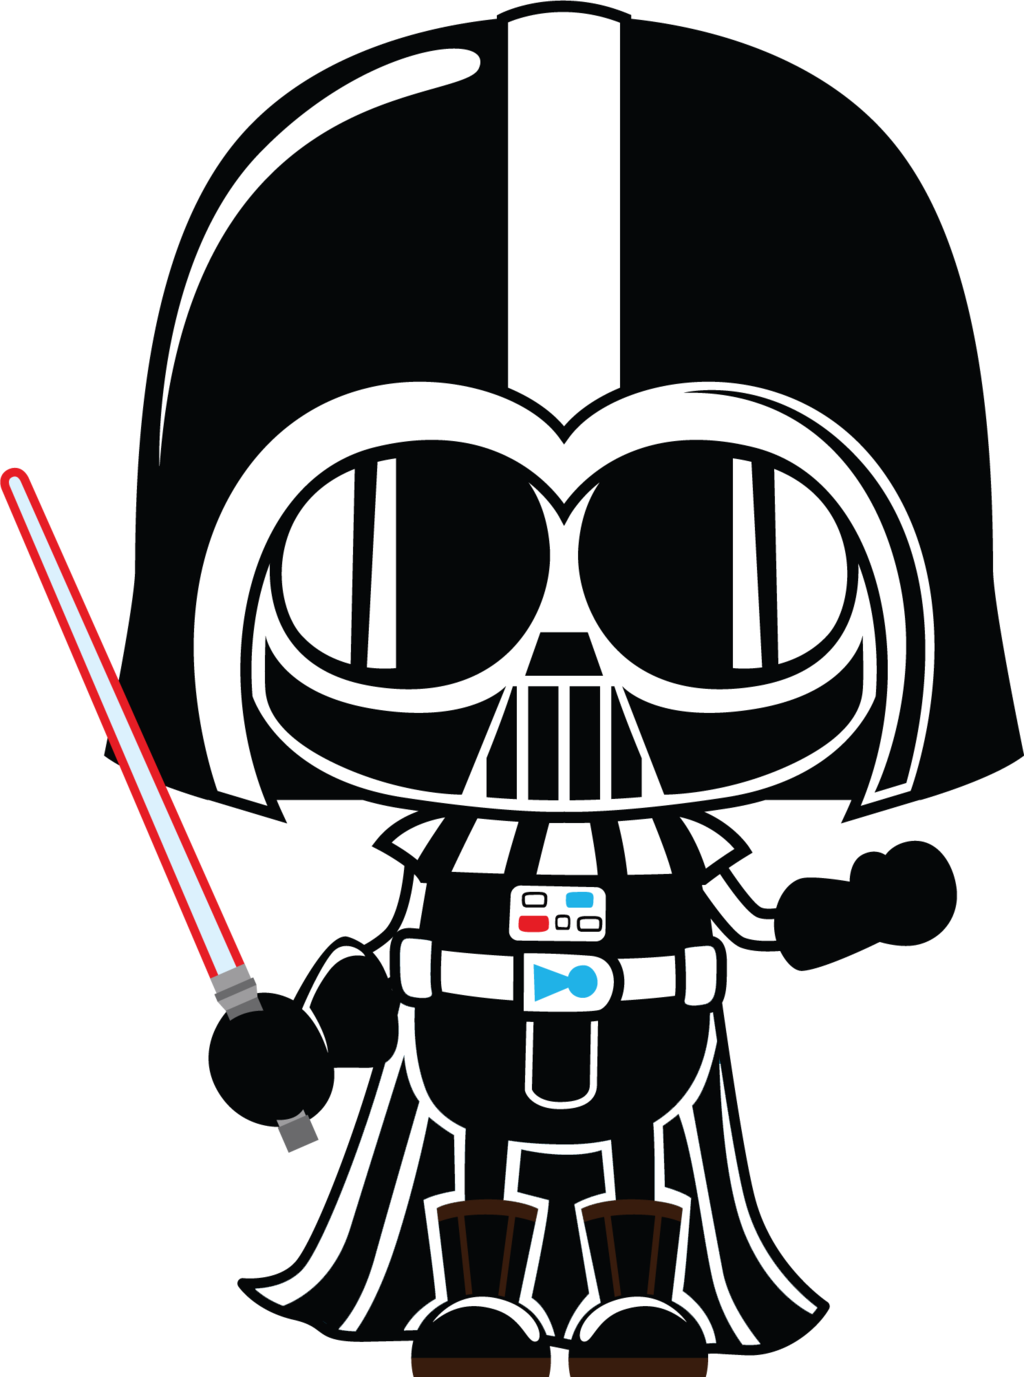 Darth Vader Clip Art & Darth Vader Clip Art Clip Art Images.